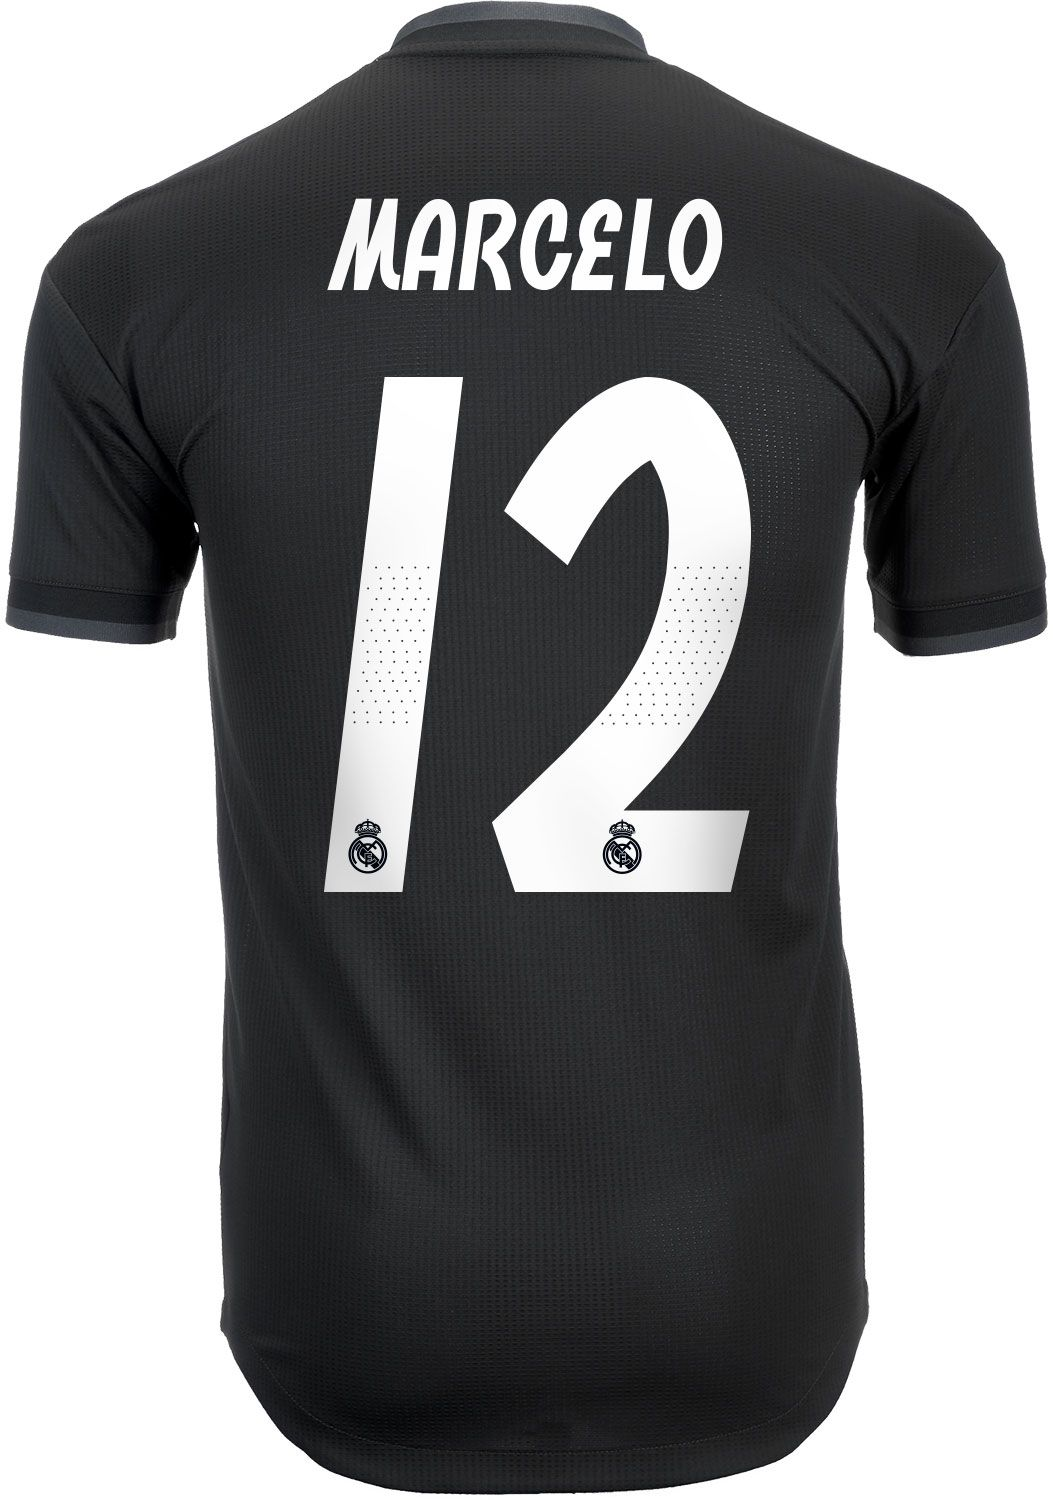 6b20a3f65 2018 19 adidas Marcelo Real Madrid authentic Away Jersey. Buy it from  soccerpro.com